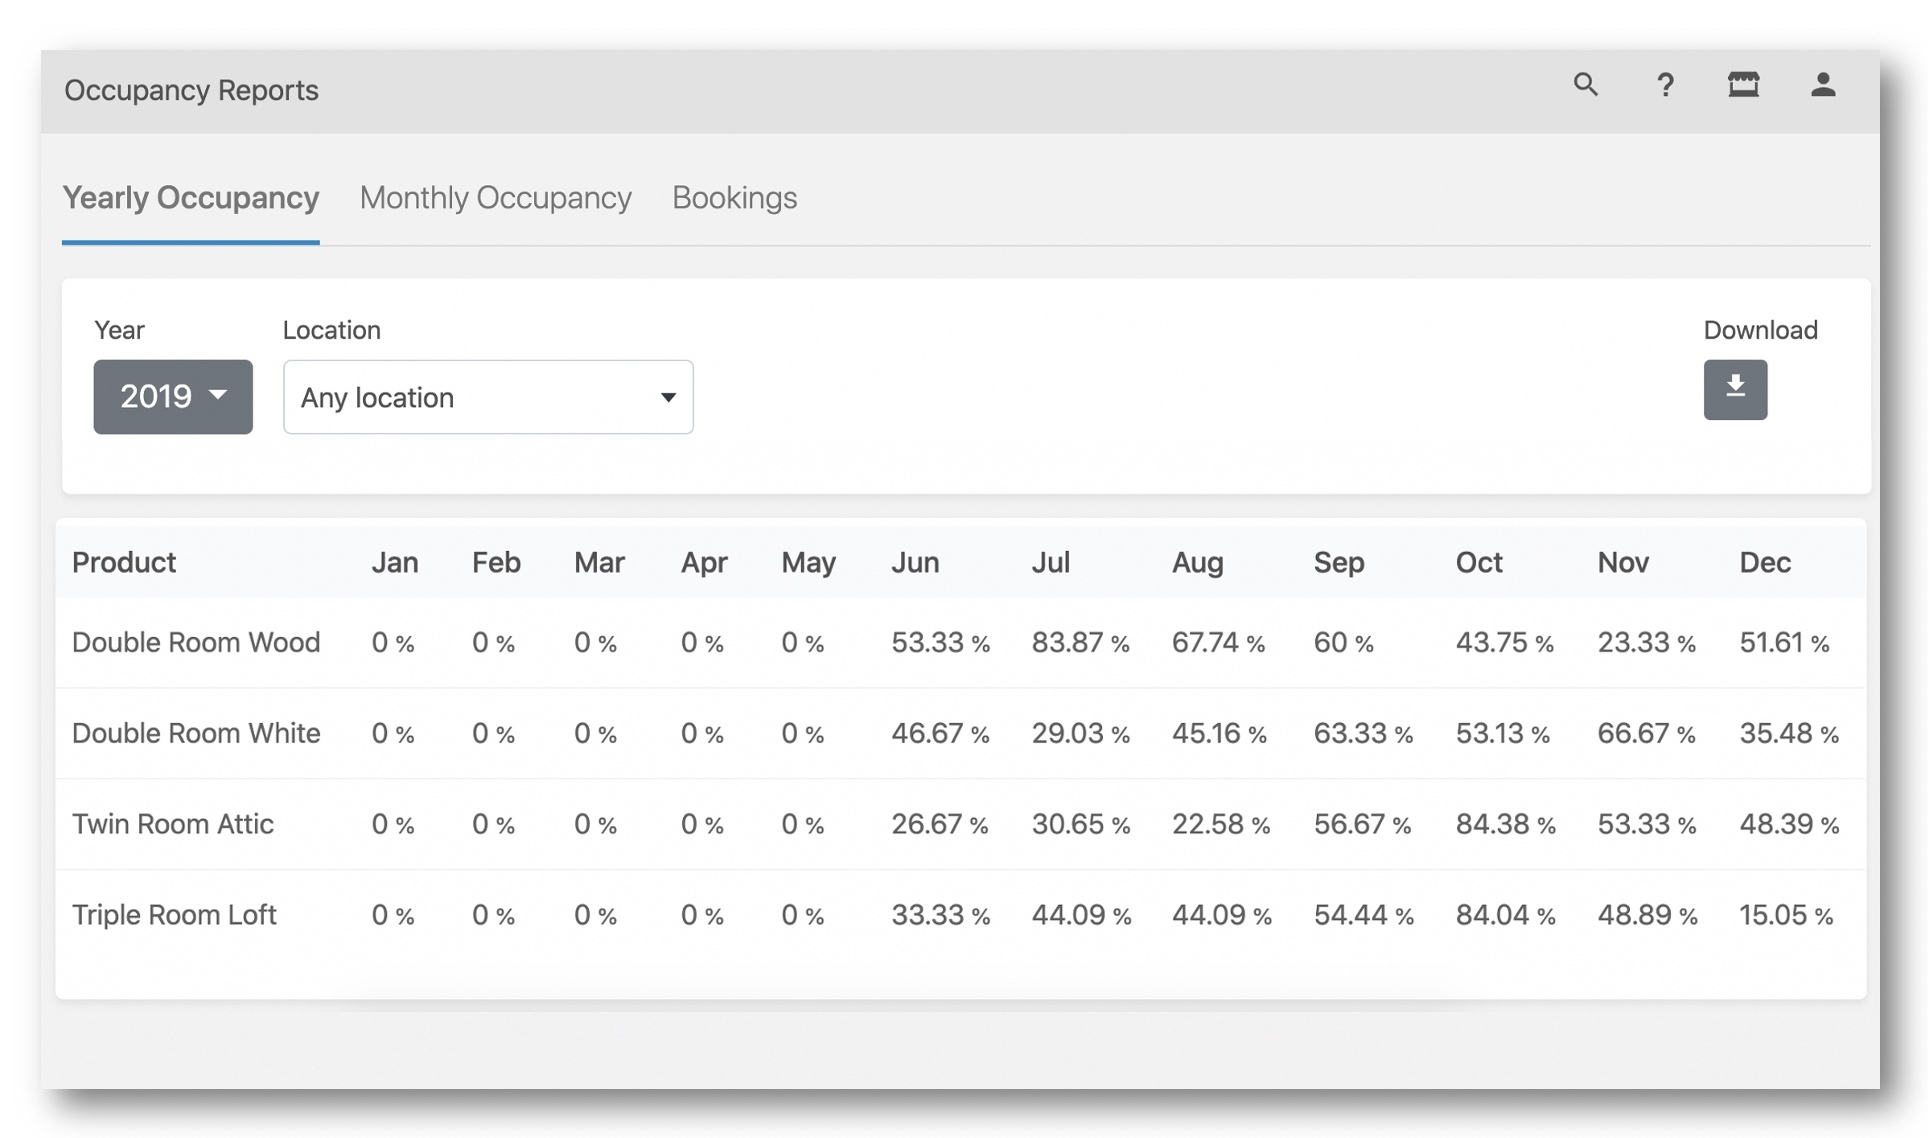 Occupancy rate in Bookinglayer